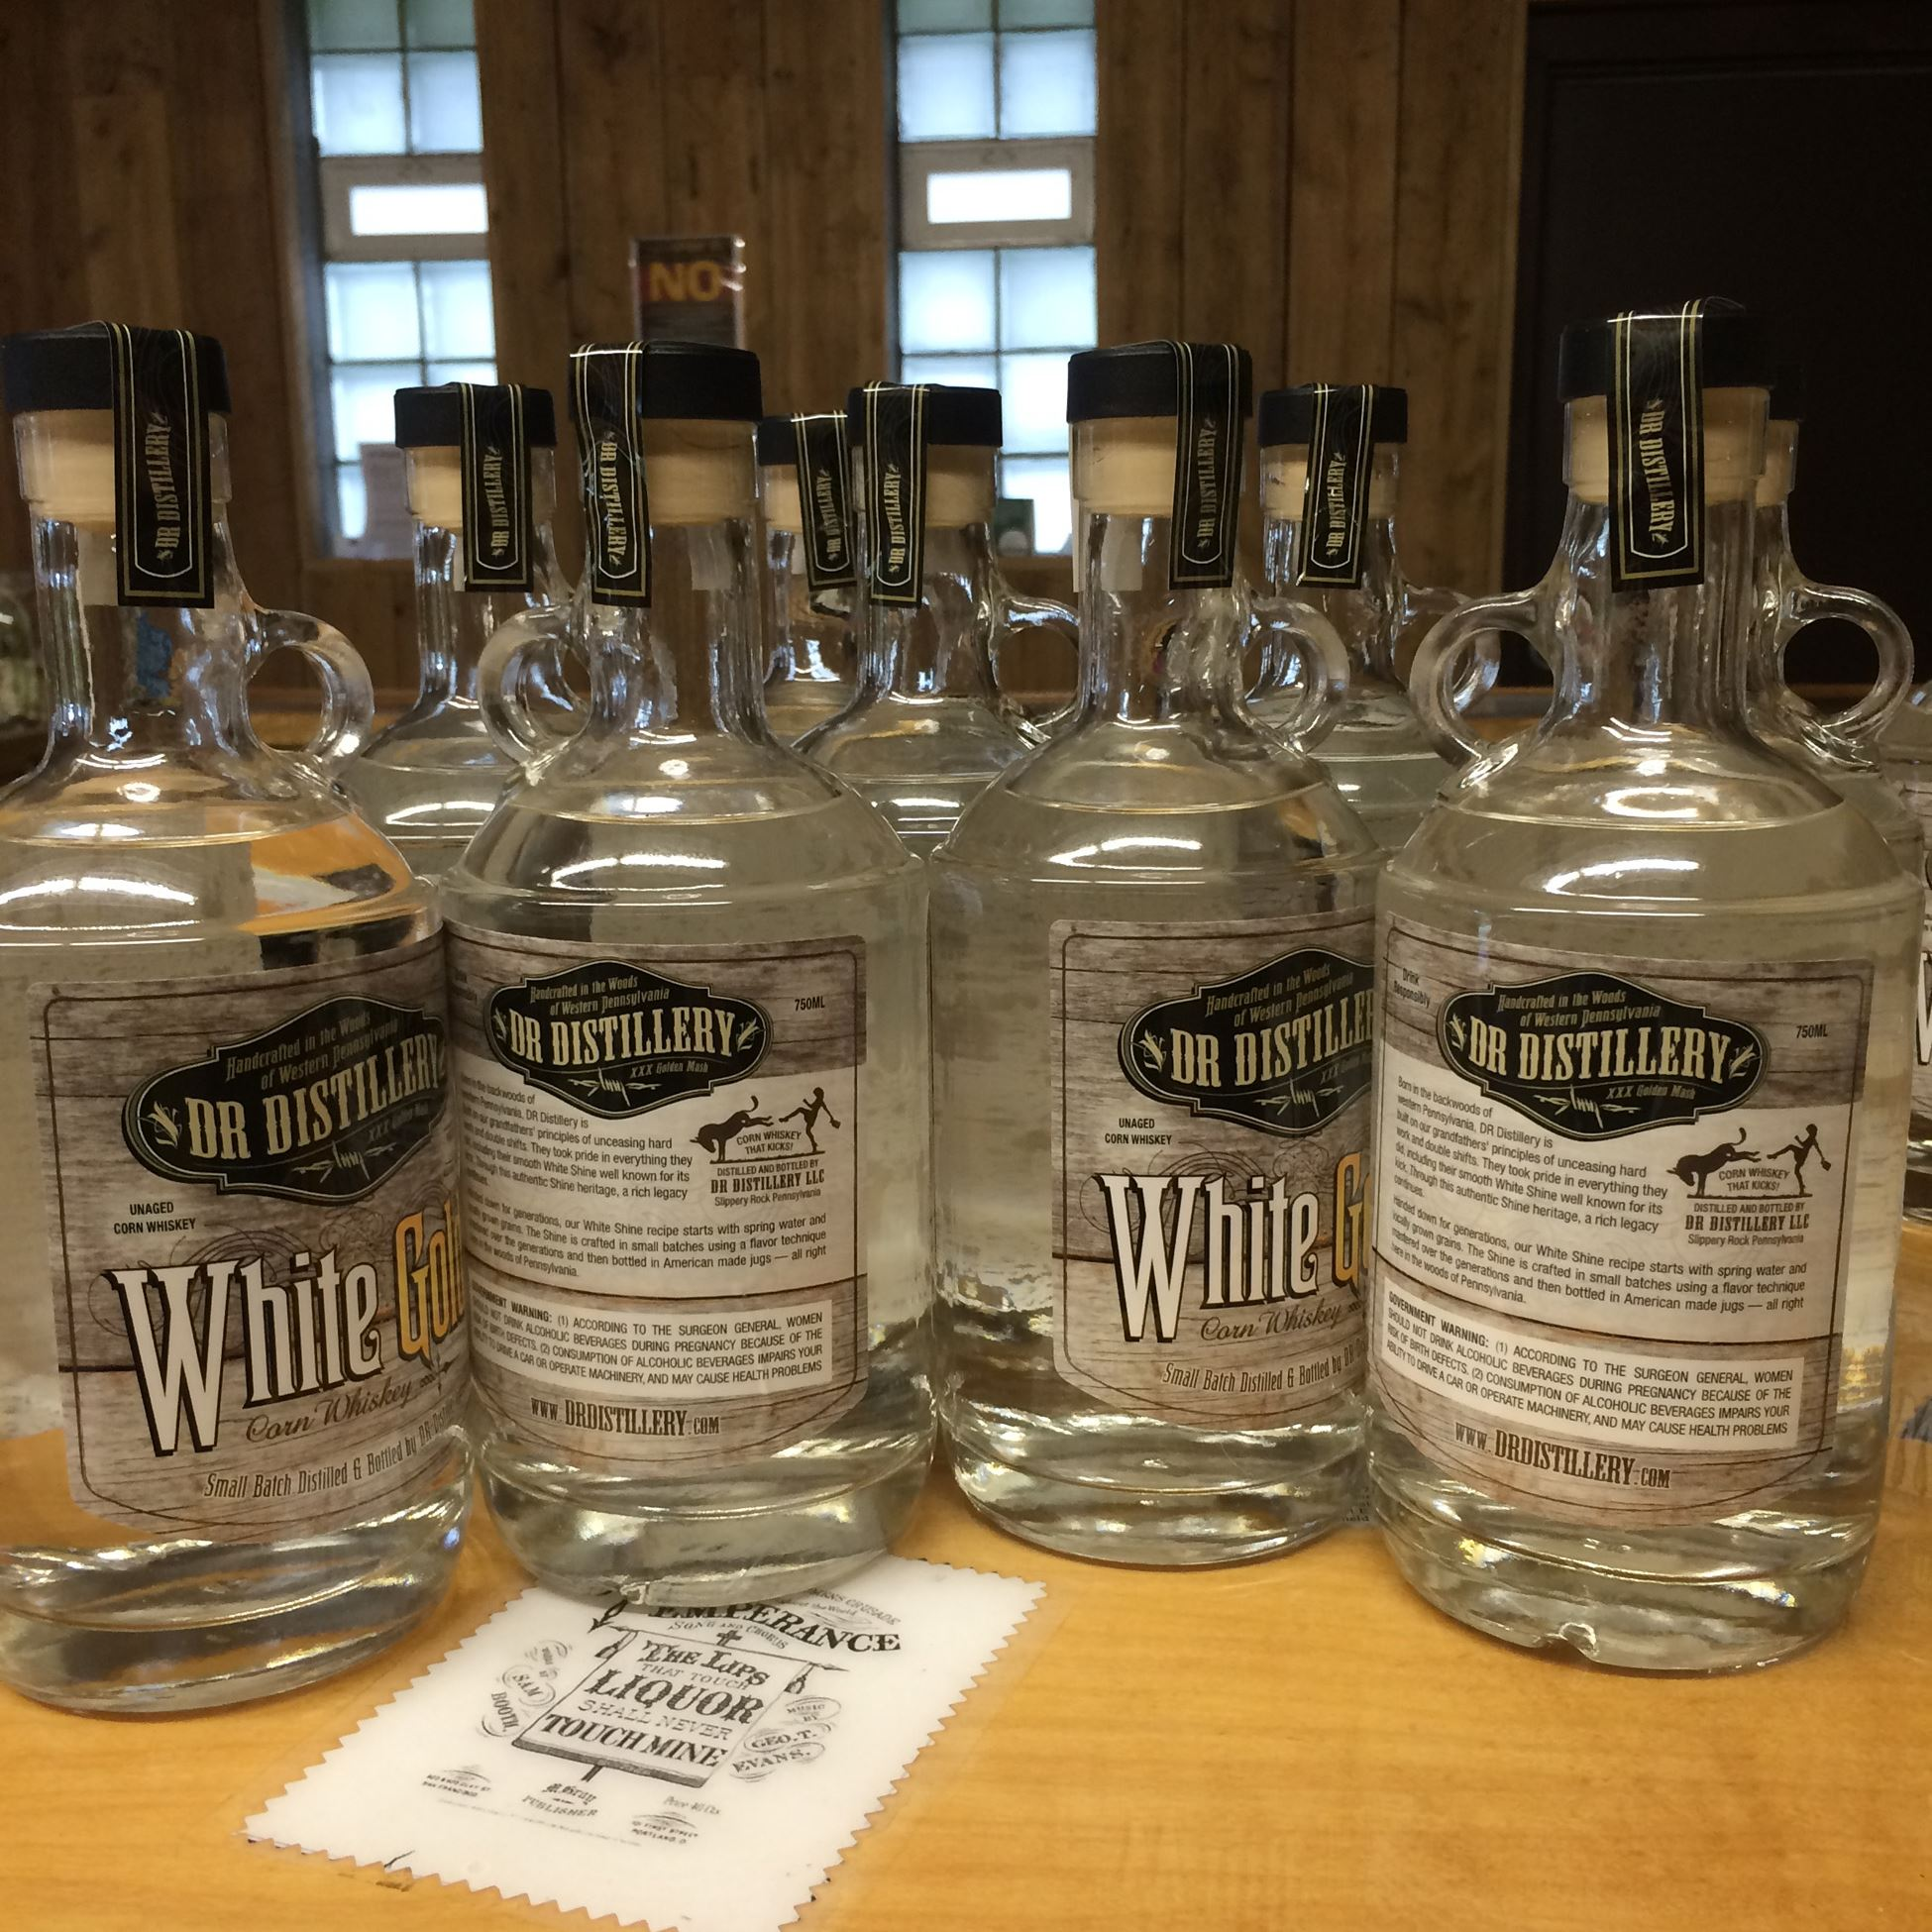 WhiteGoldBar-1 White Gold Corn Whiskey from DR Distillery in Slippery Rock, Butler County.